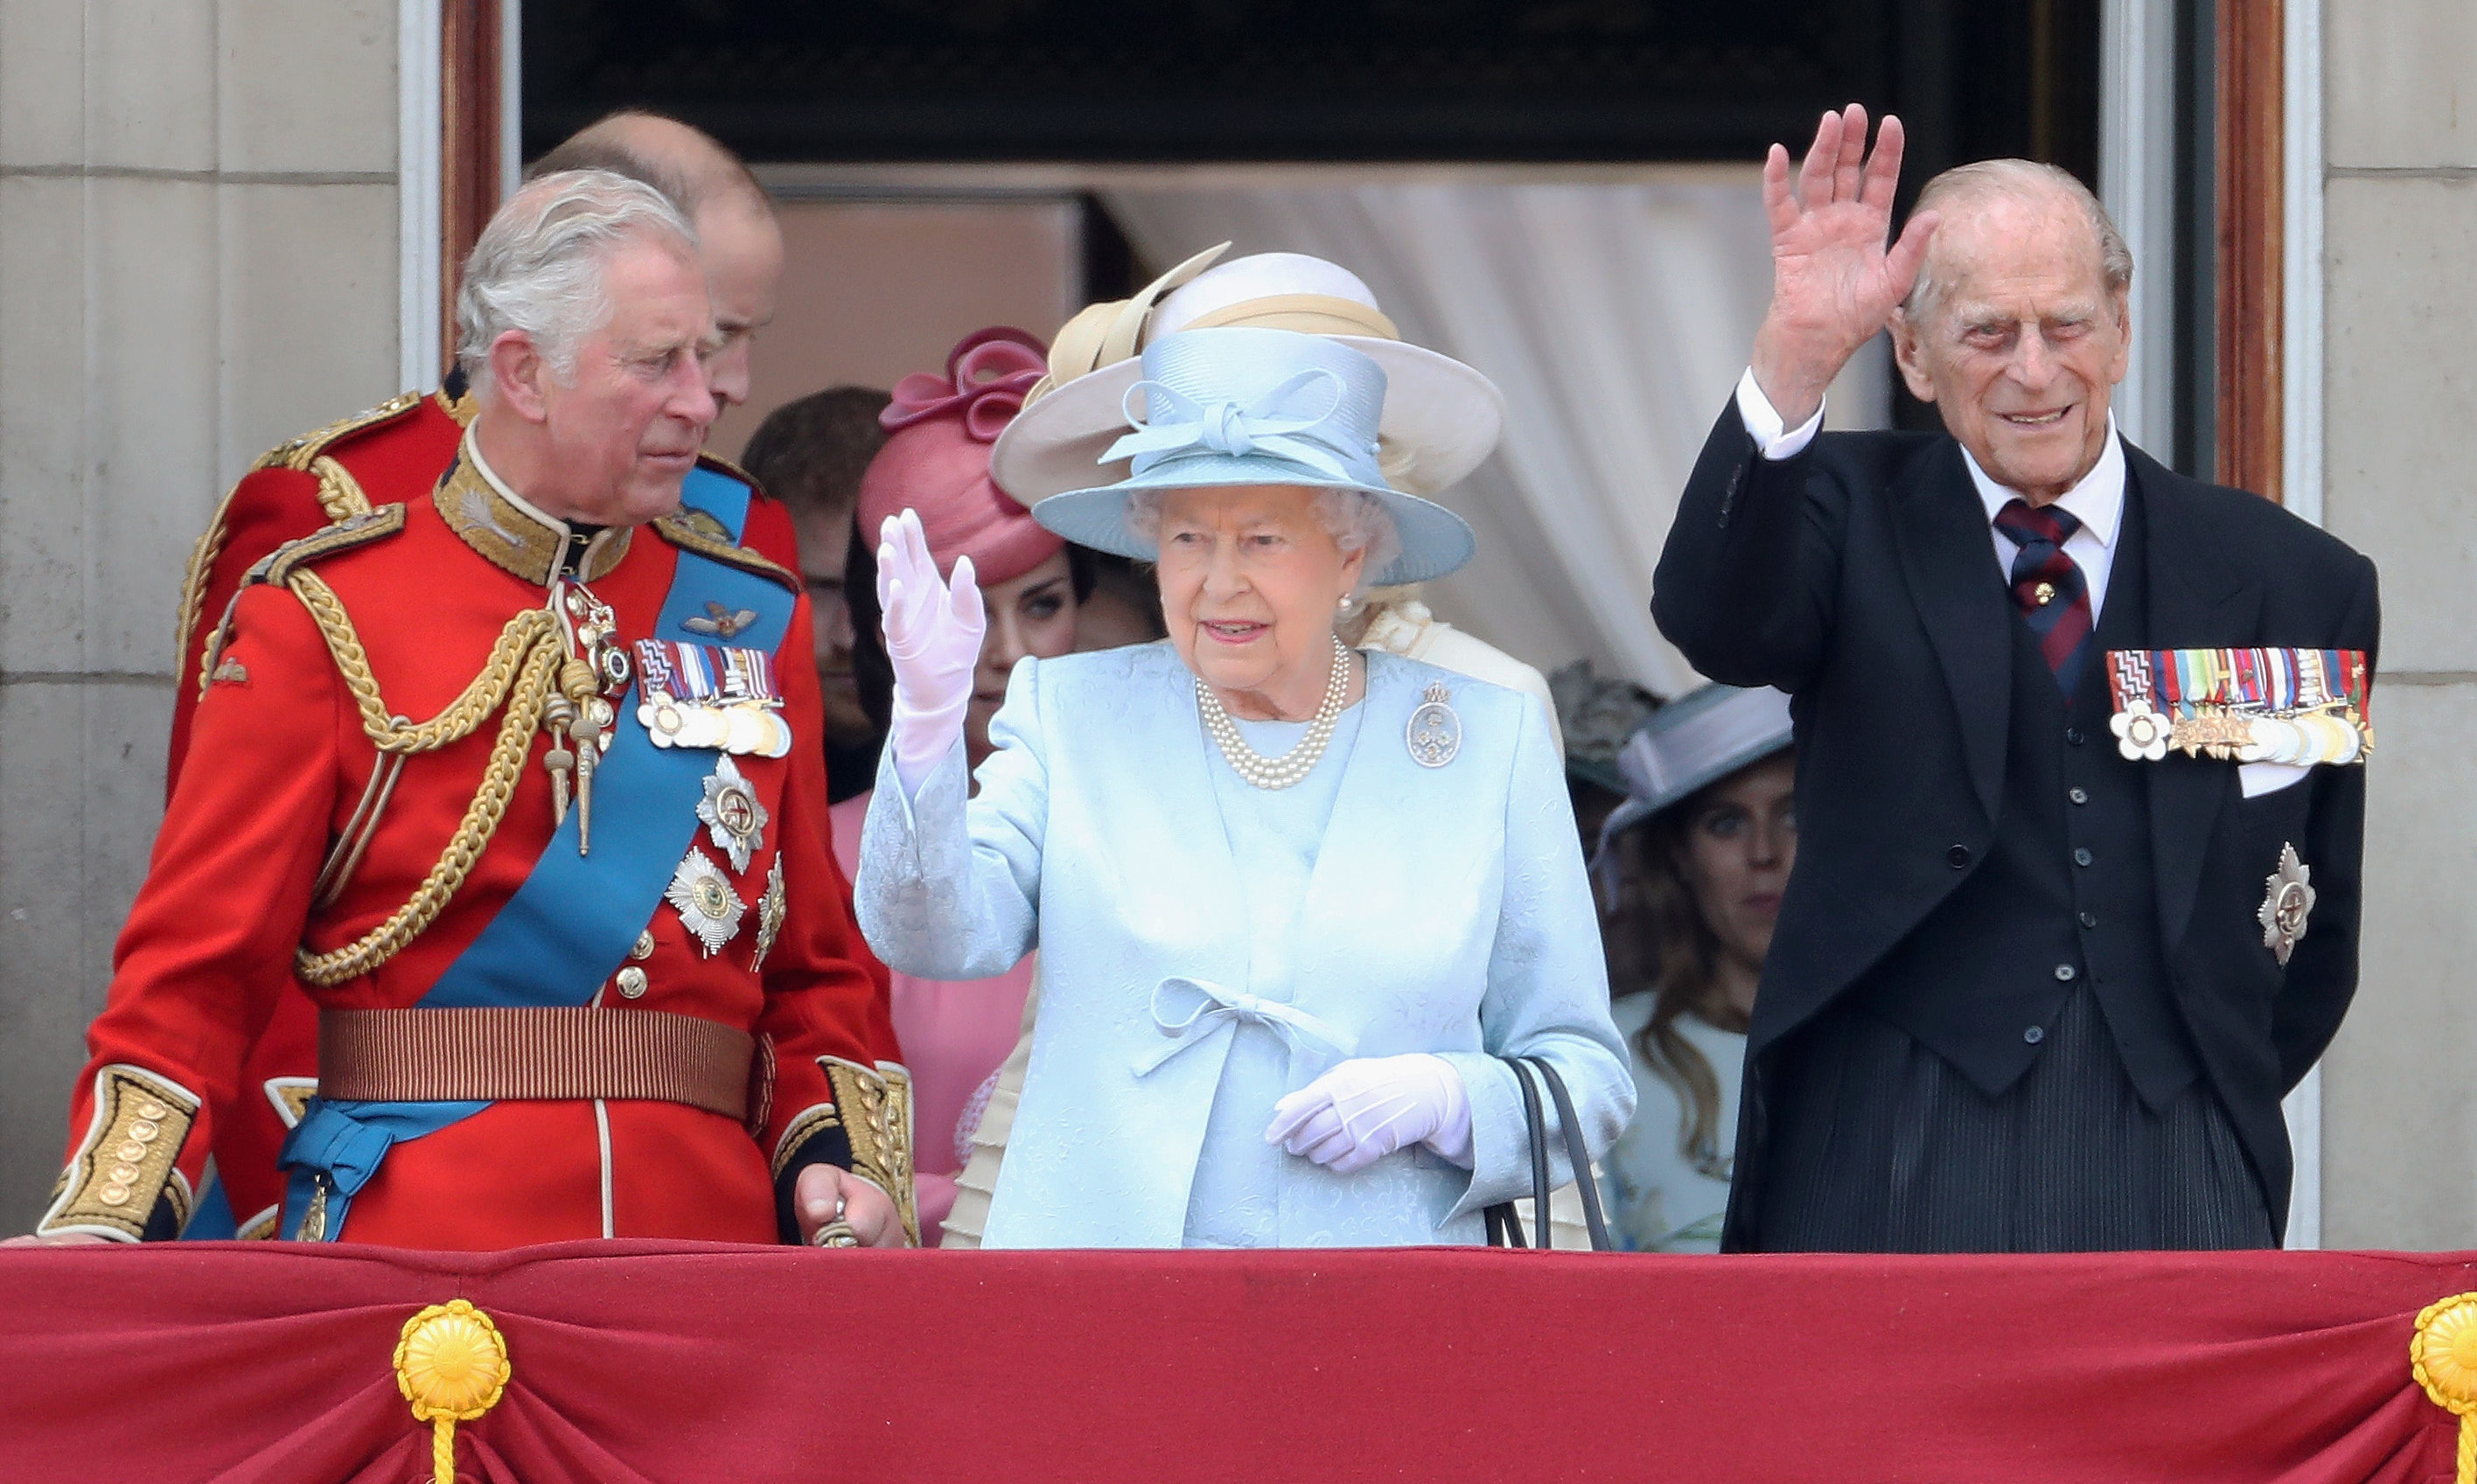 Prince Charles, Queen Elizabeth II and Prince Philip look out from the balcony of Buckingham Palace during the Trooping the Colour parade on June 17, 2017 in London.